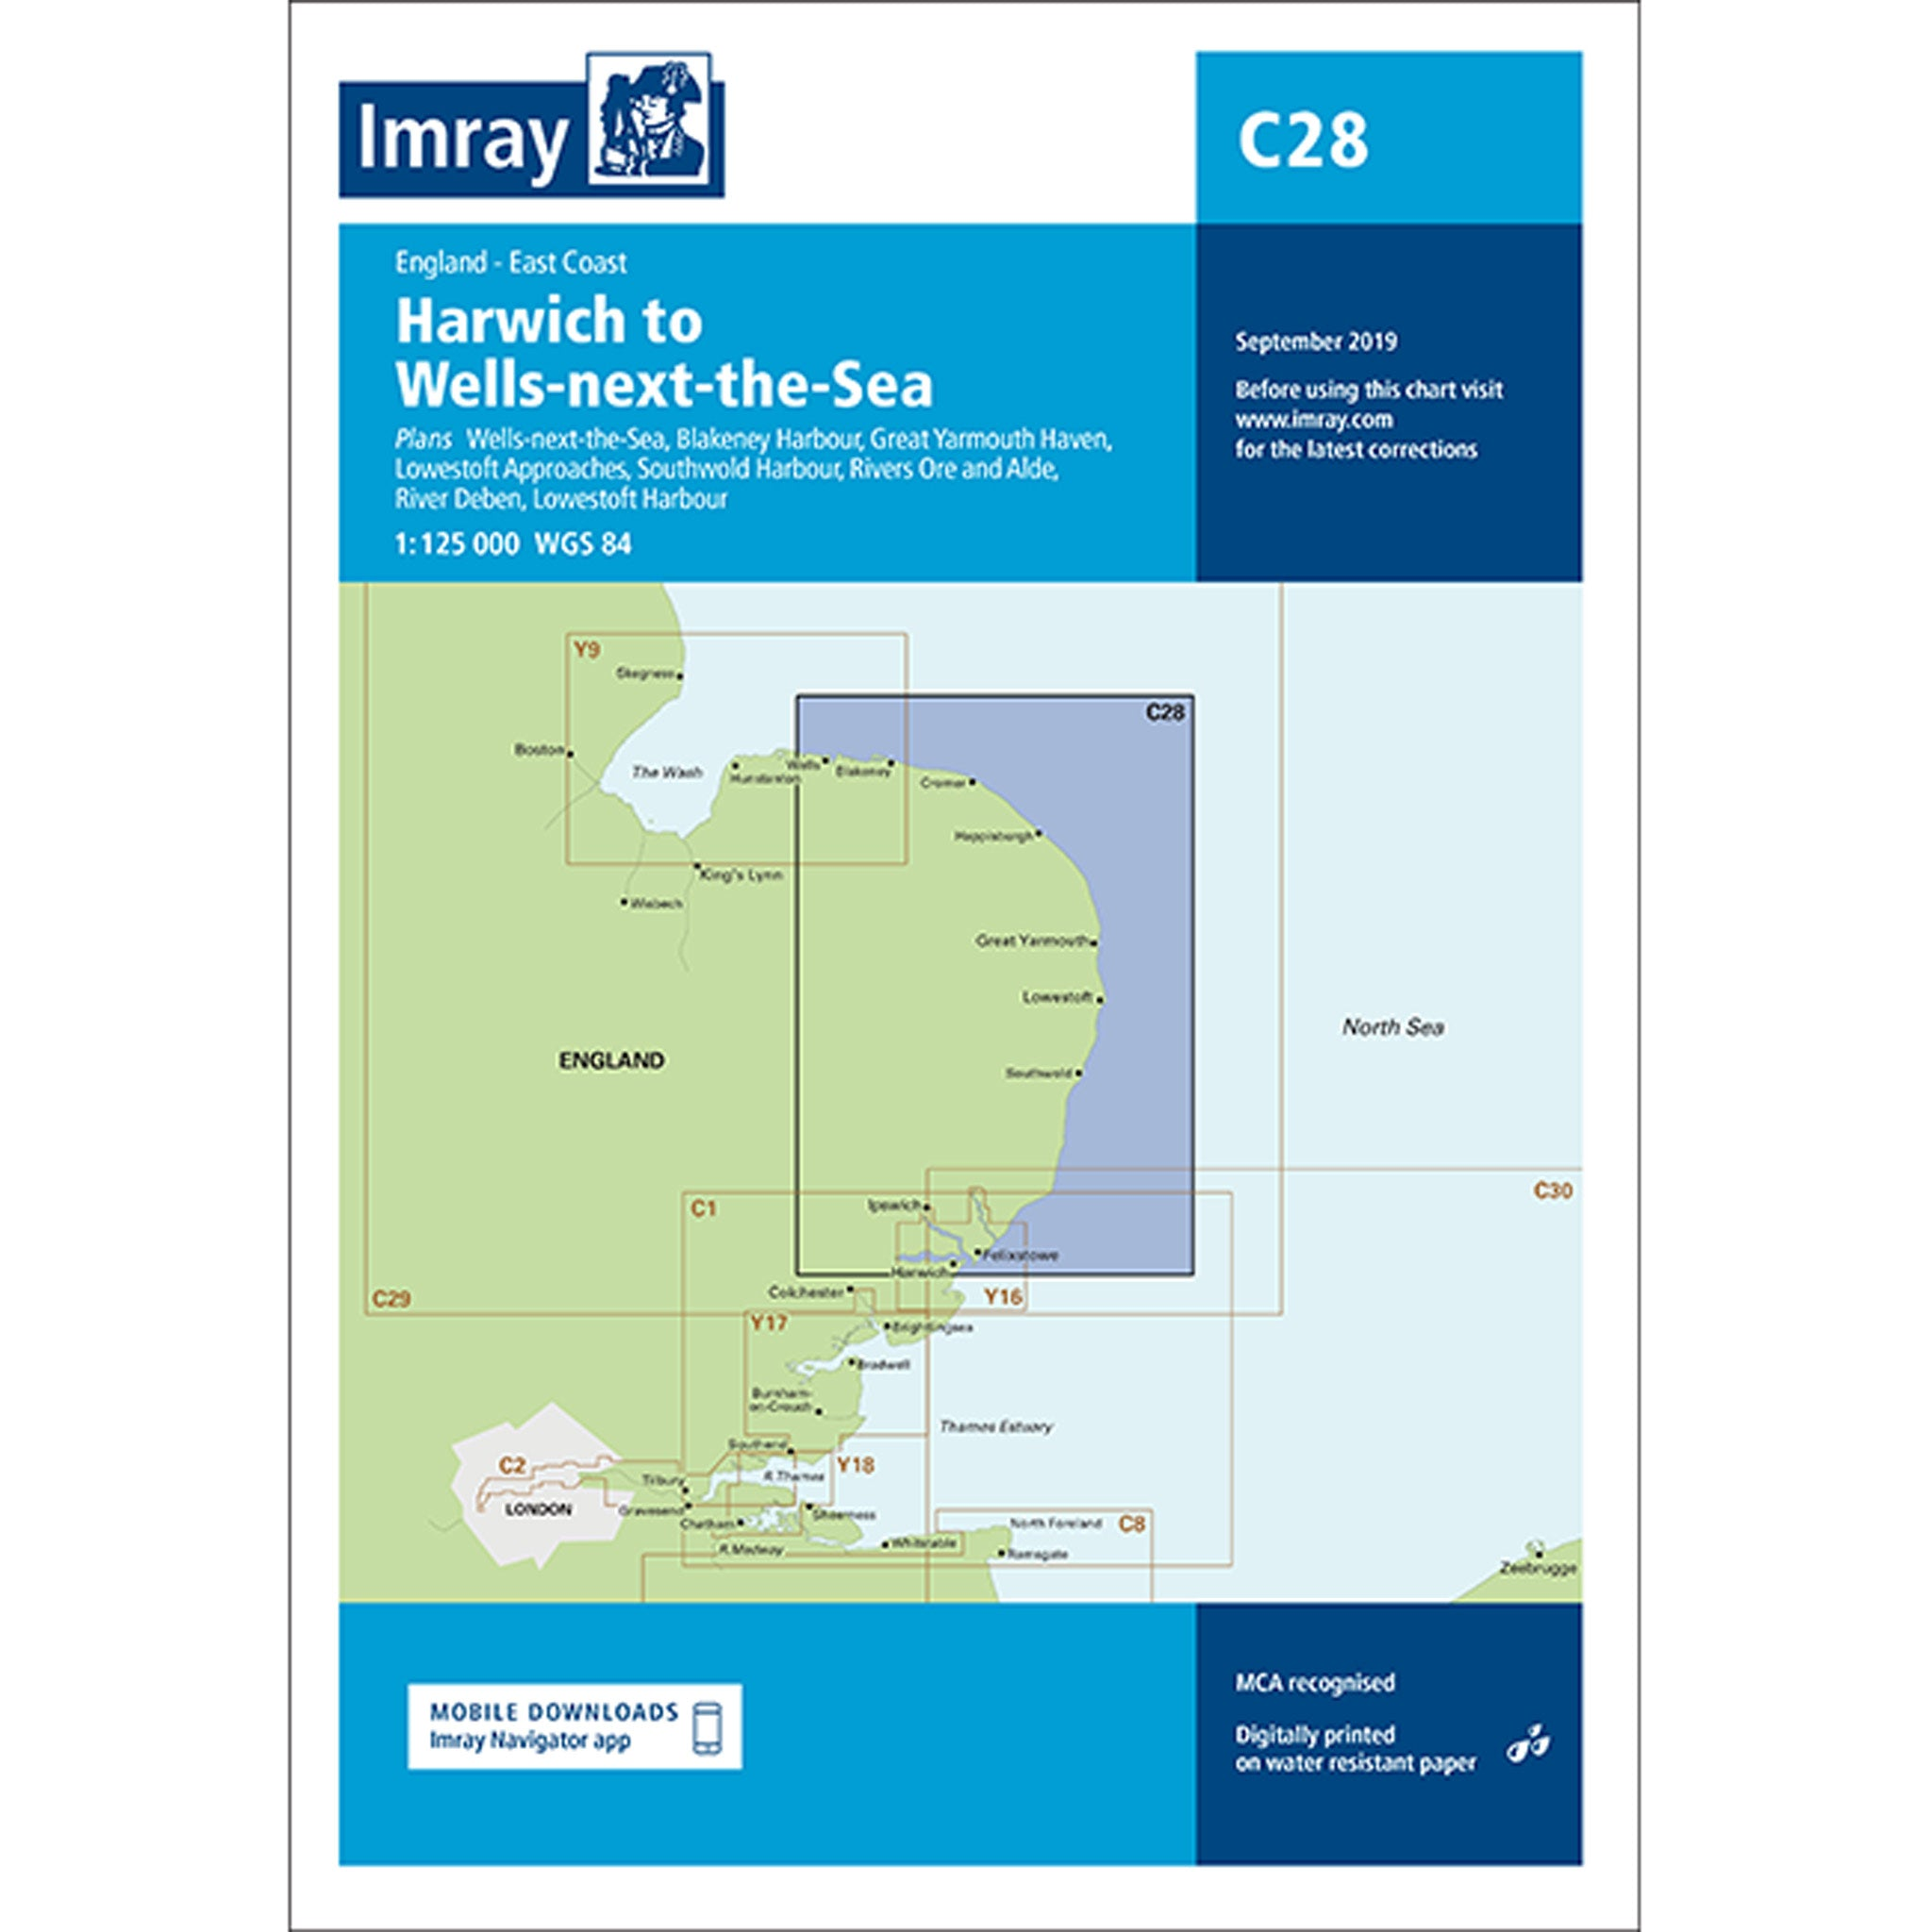 Imray Chart C28 Harwich to Wells-next-the-Sea